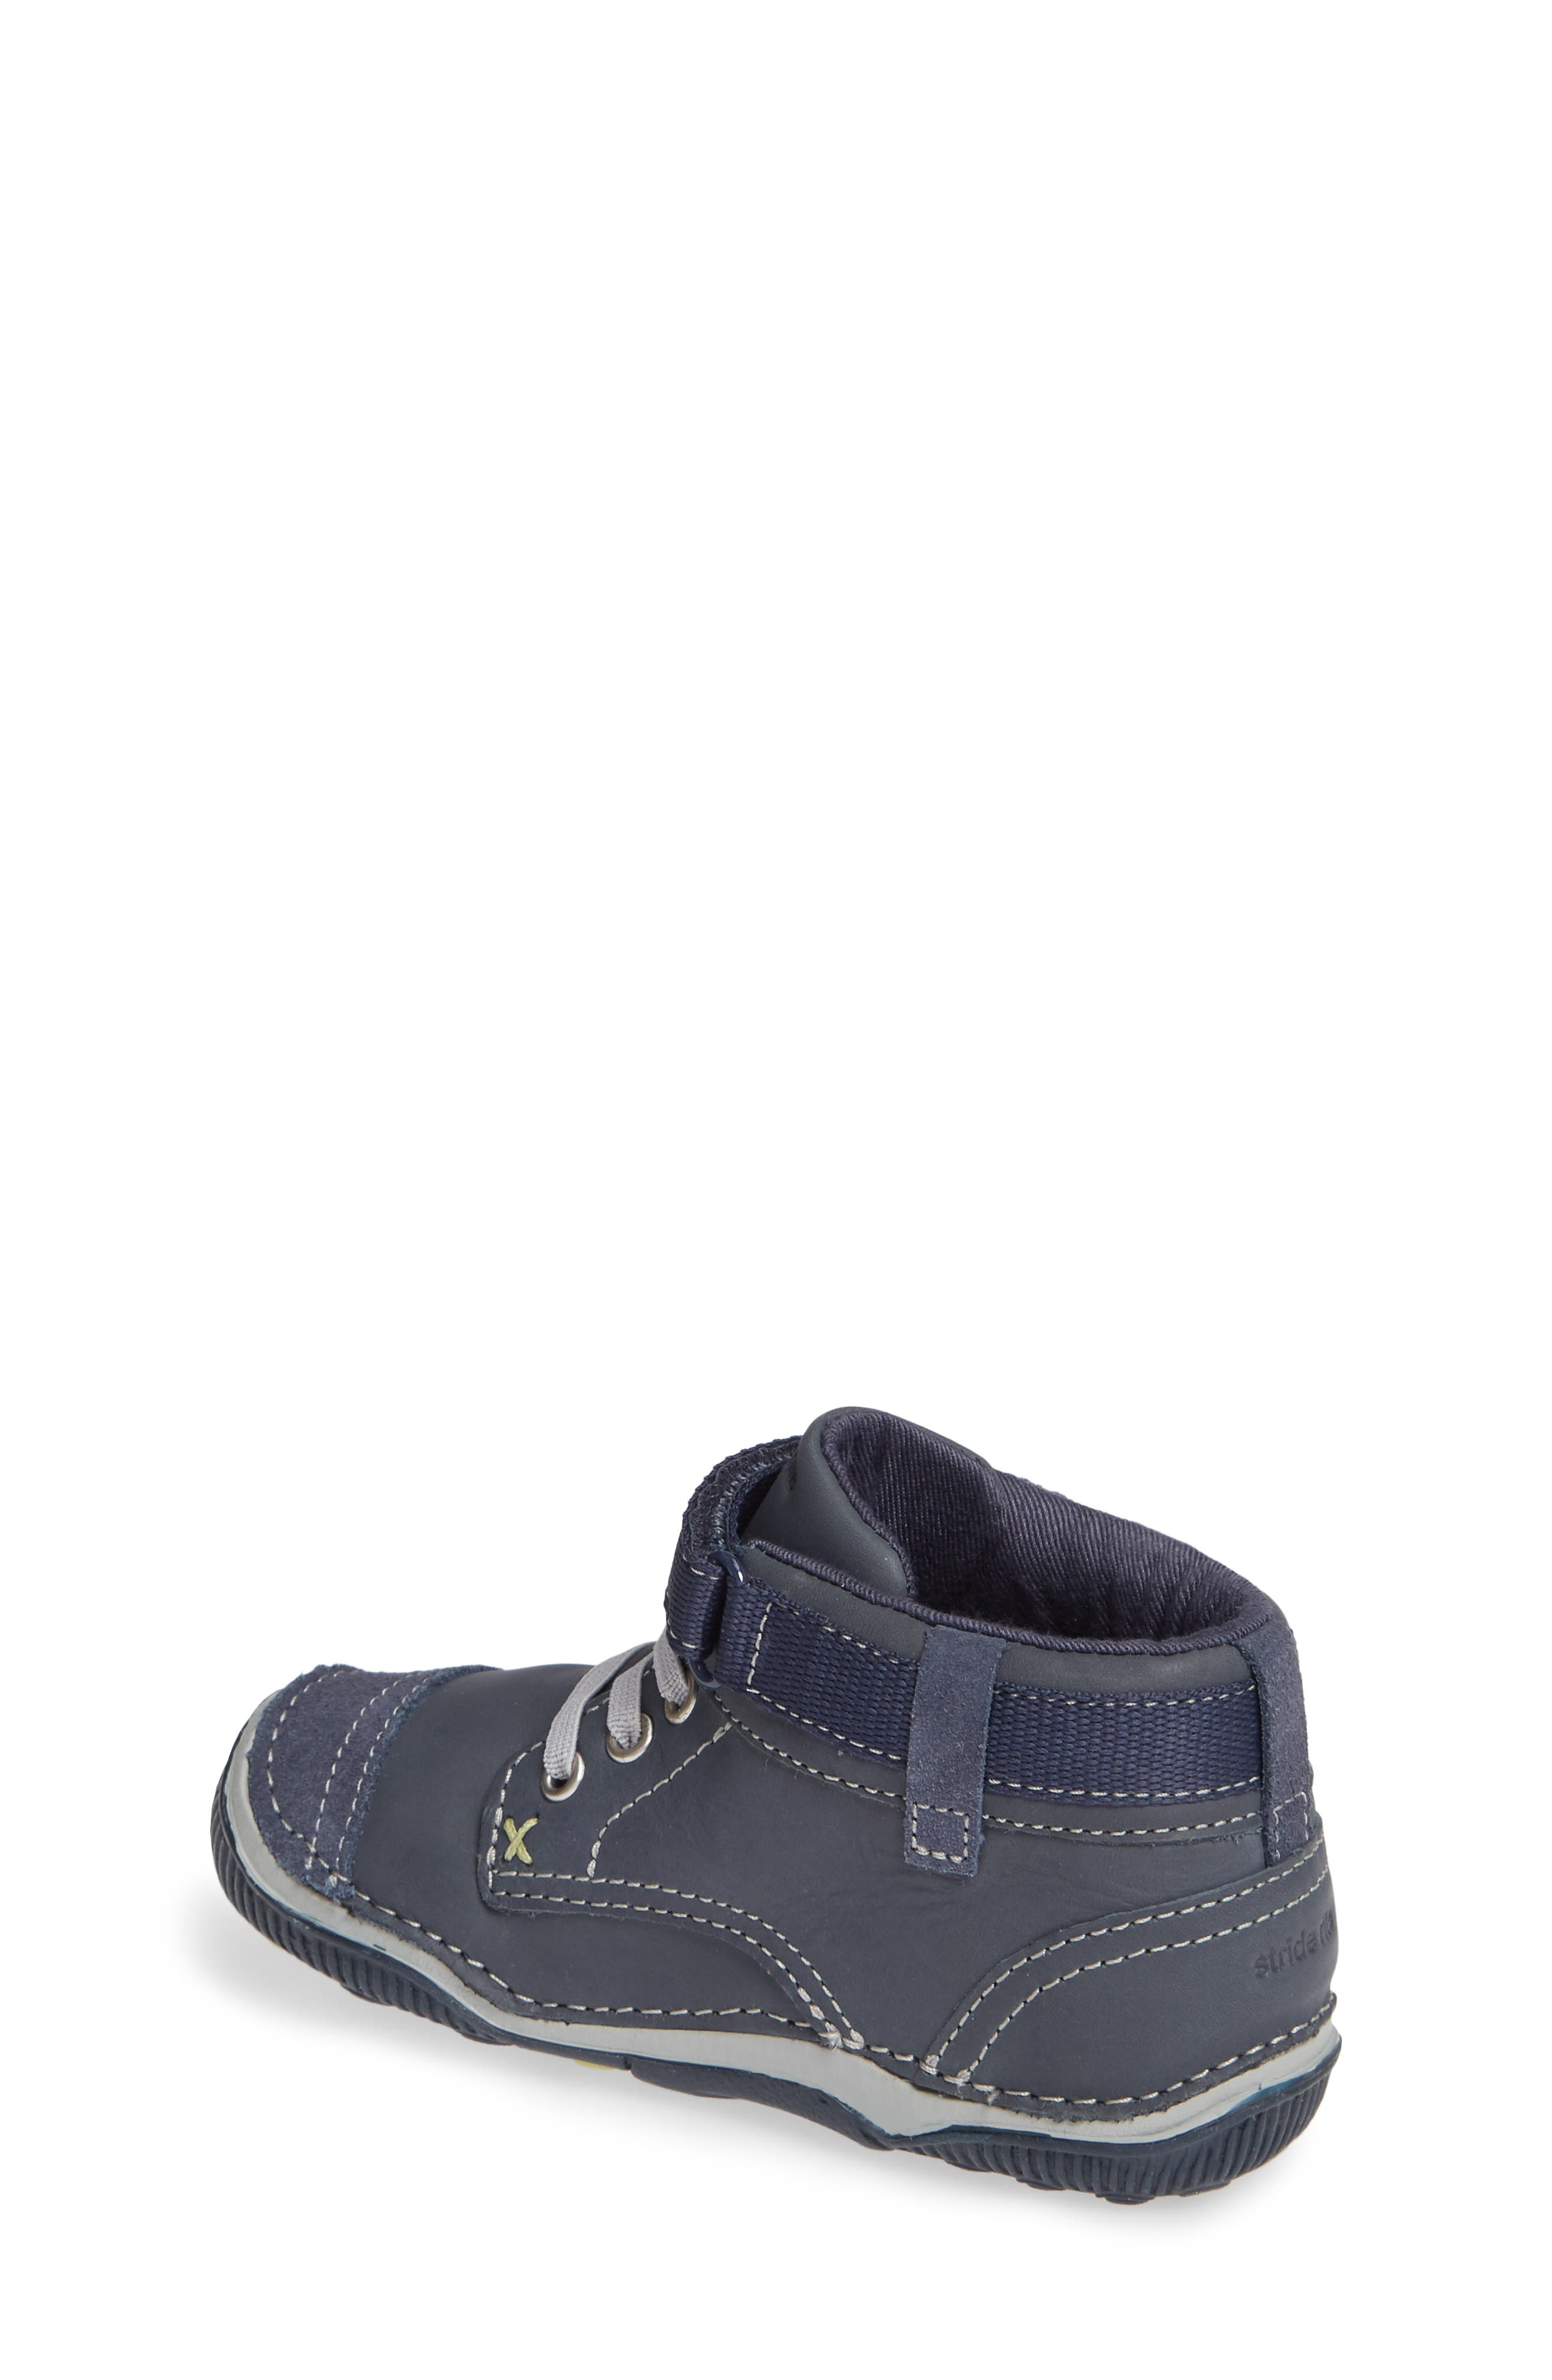 'Garrett' High Top Bootie Sneaker,                             Alternate thumbnail 2, color,                             NAVY